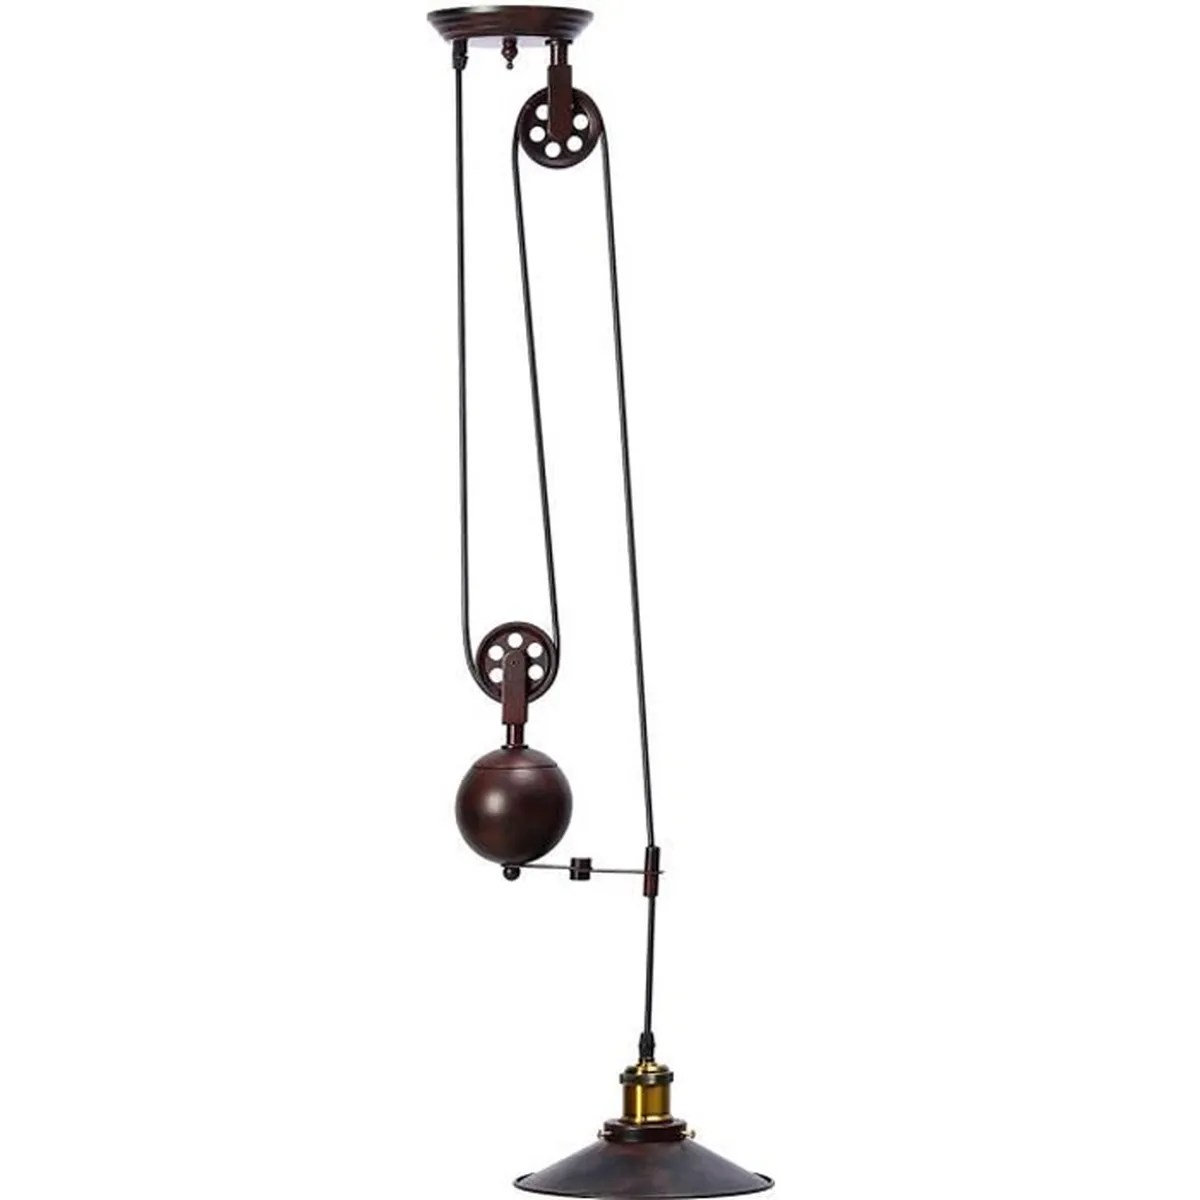 Suspension Reglable Lampe Suspension Reglable Achat Vente Pas Cher